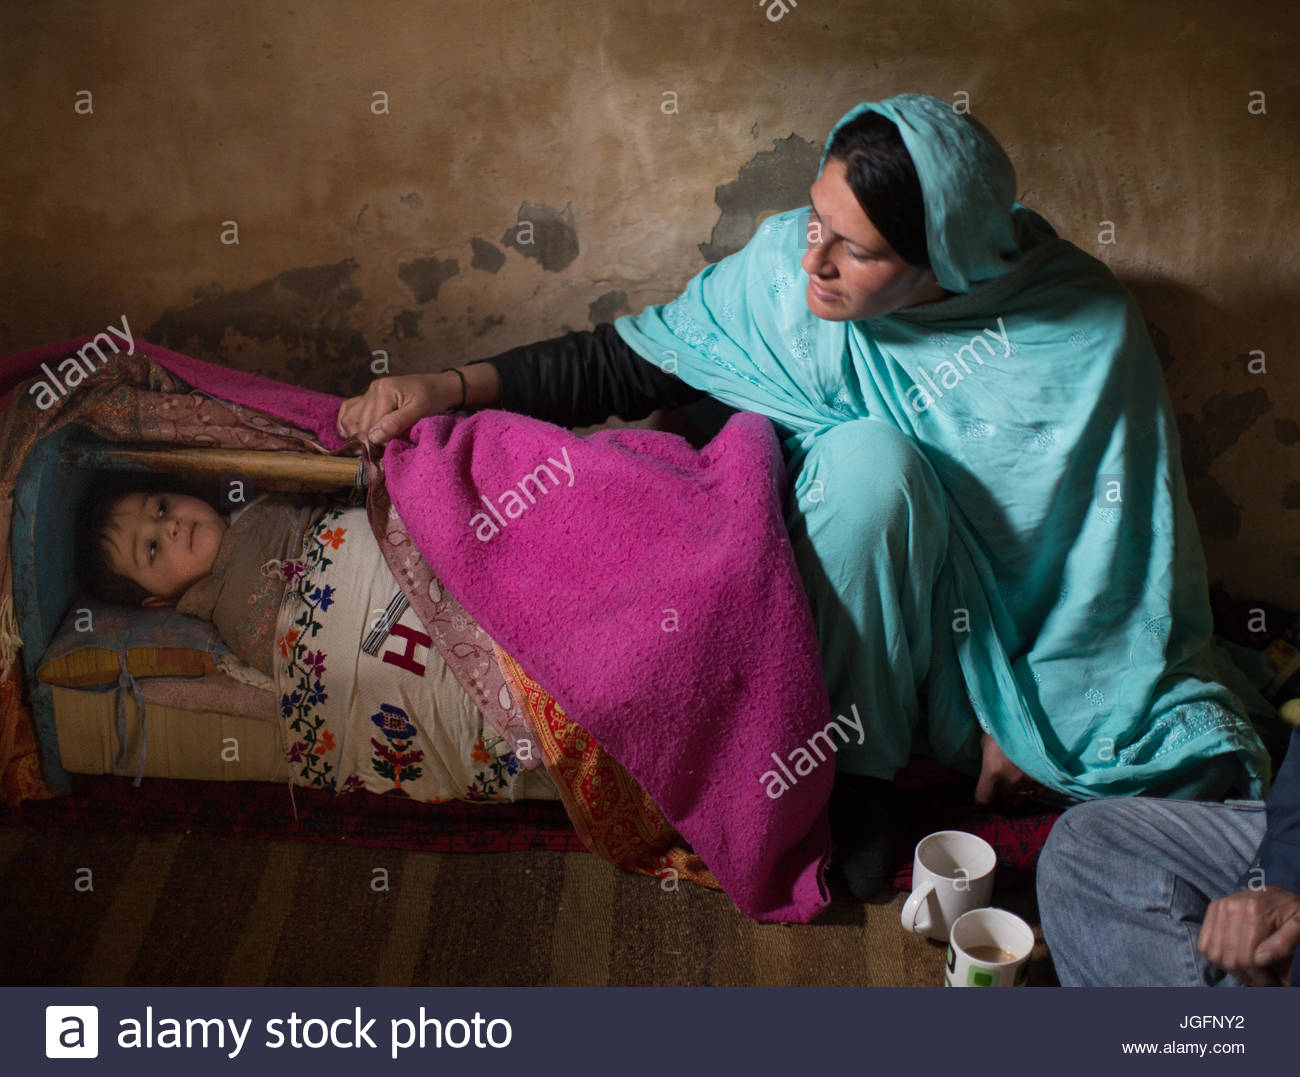 A woman watches over her baby at home in the Hunza Region. - Stock Image